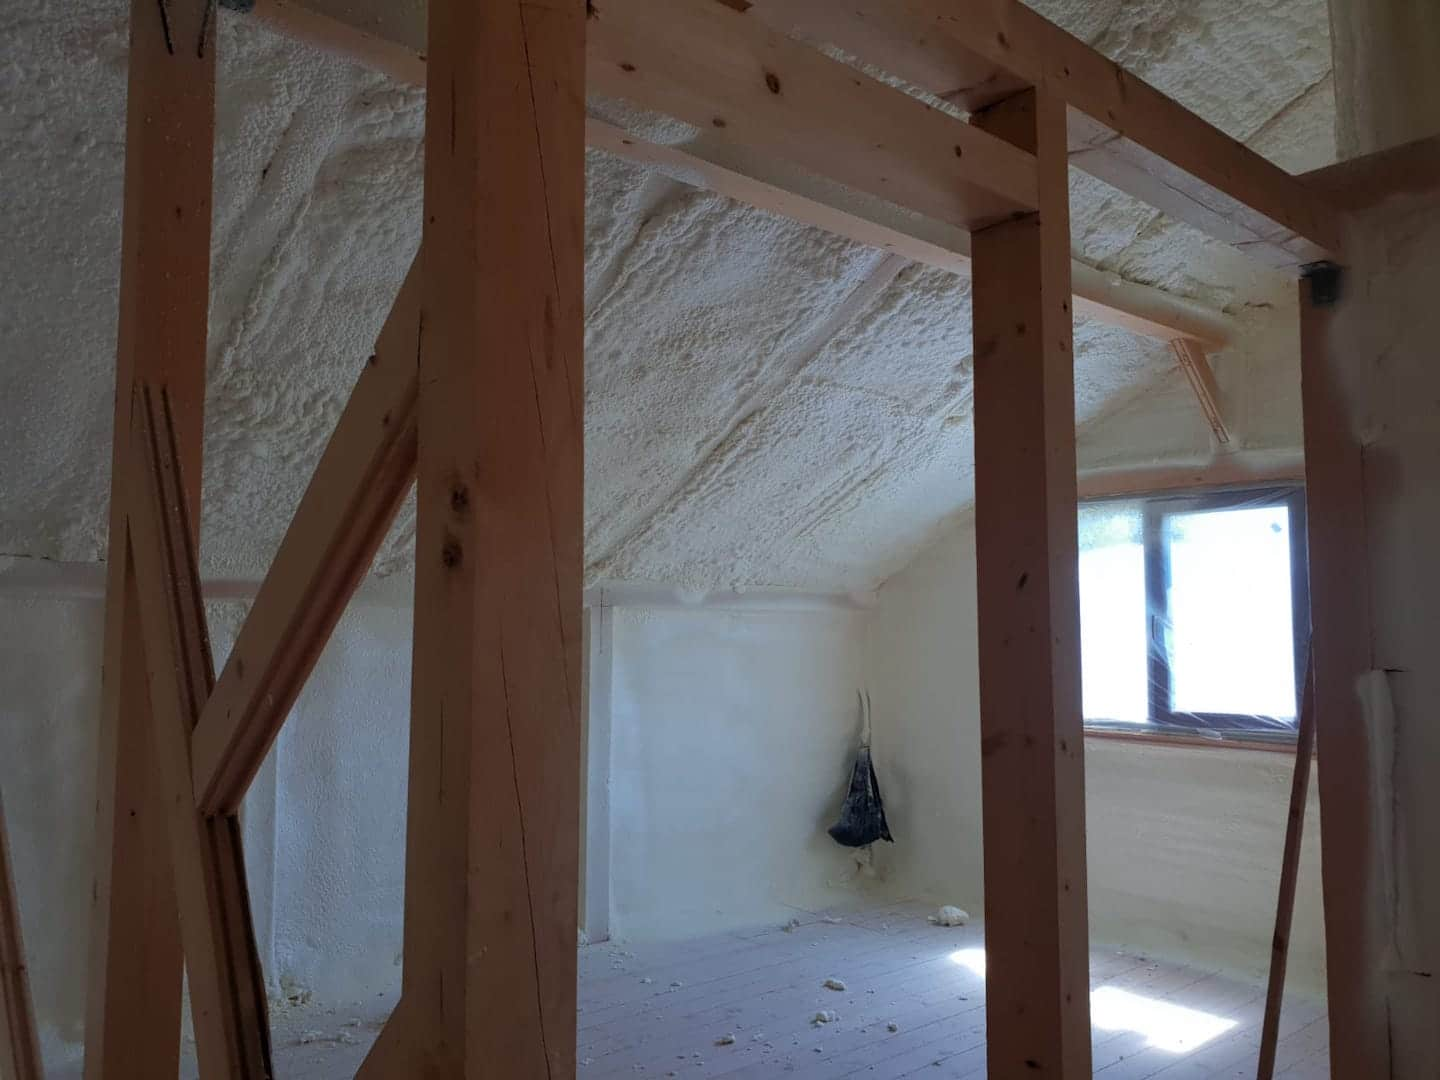 Residential Closed Cell Foam Insulation Cincinnati 03